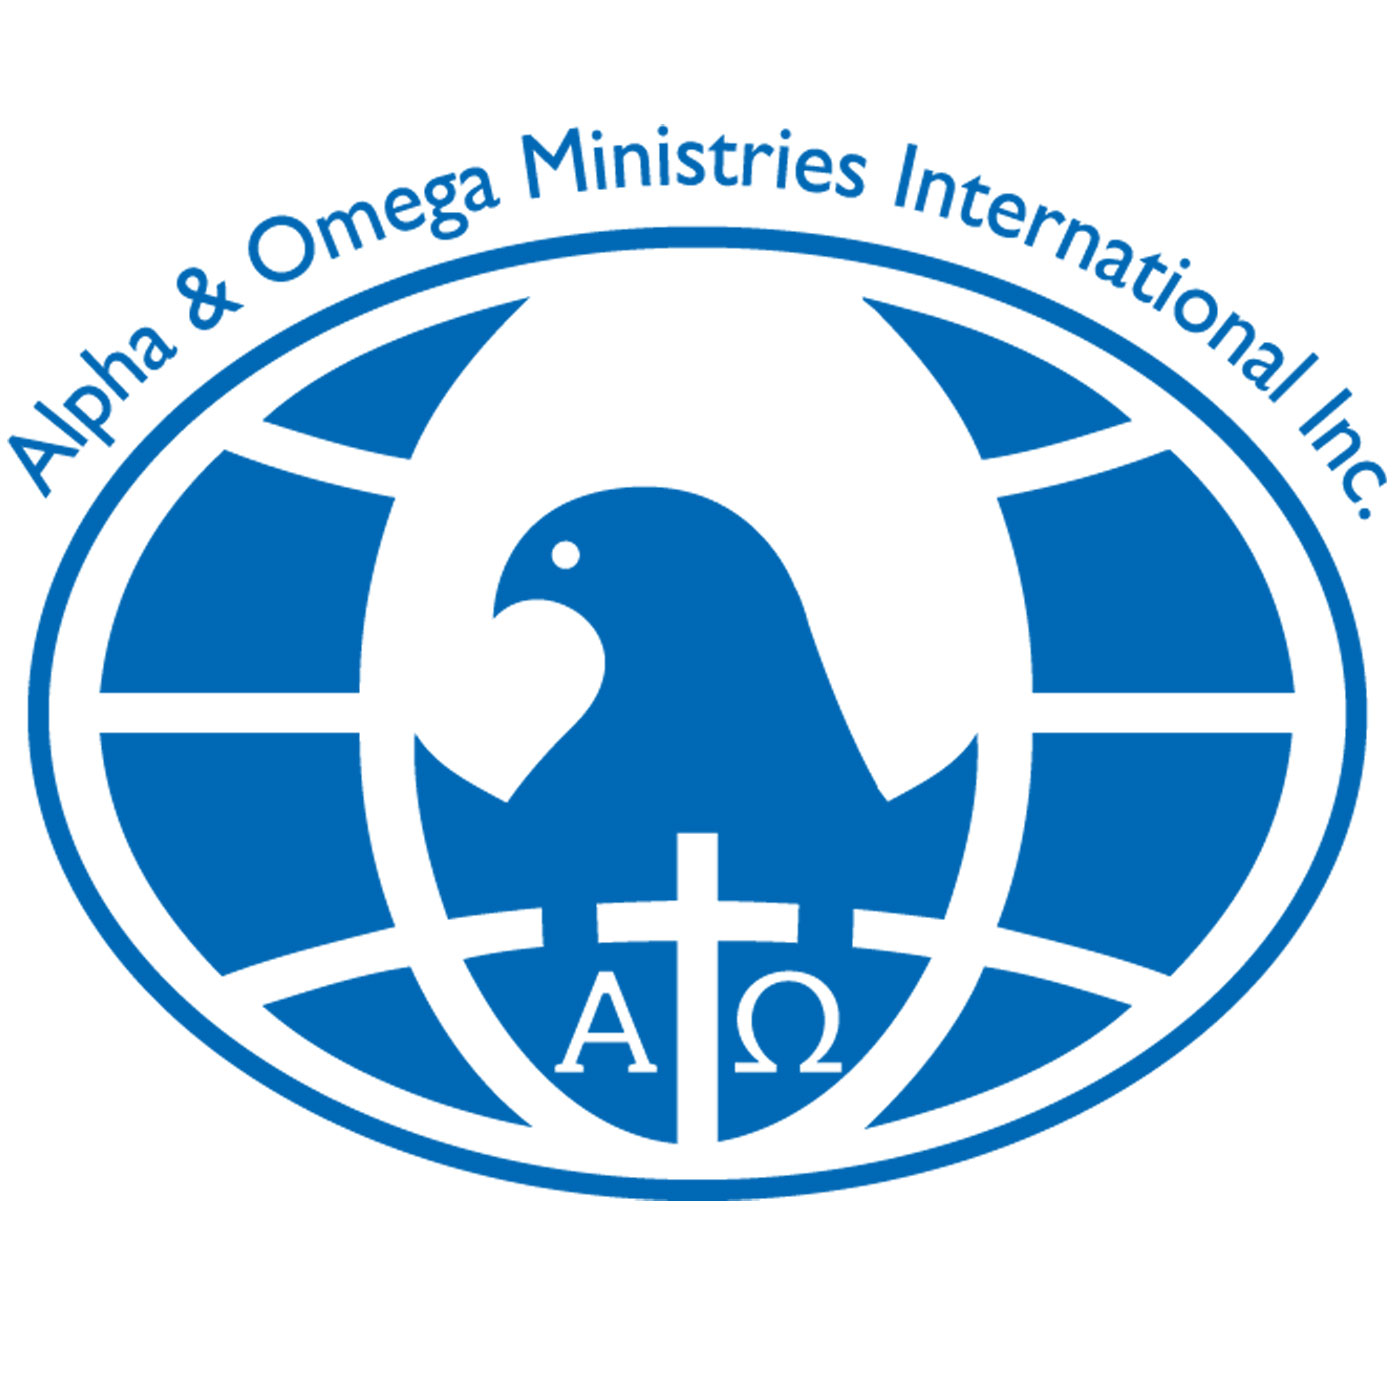 Alpha and Omega Ministries International